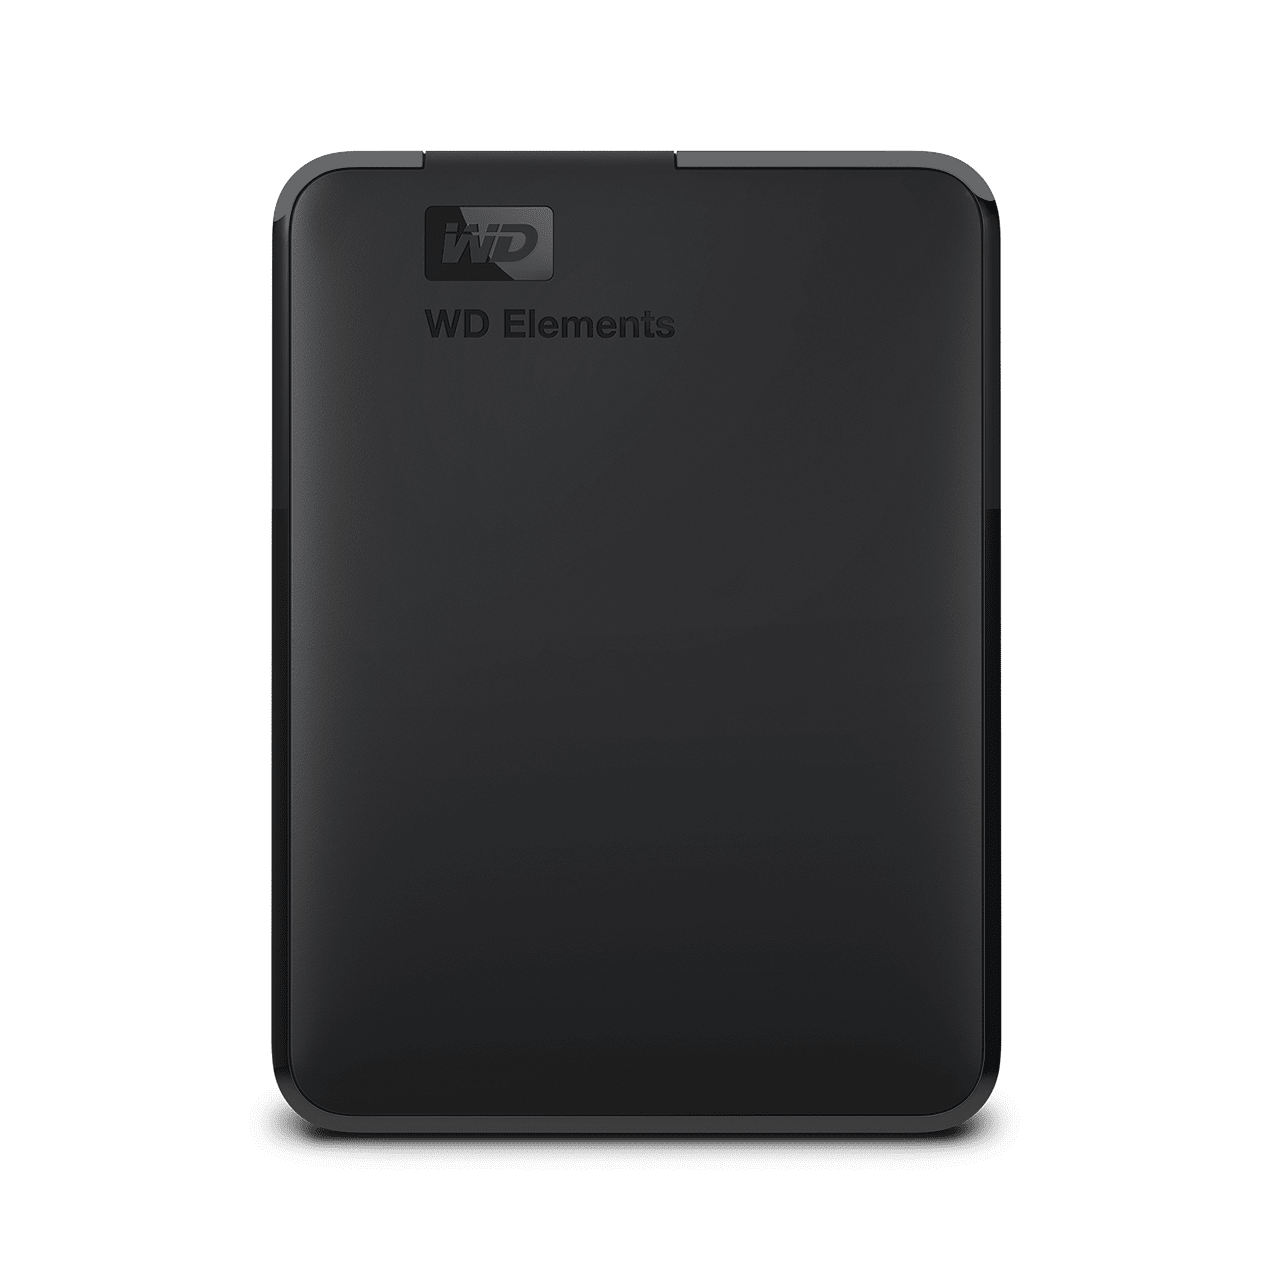 wd-elements-portable-1-2tb-front.png.thumb.1280.1280